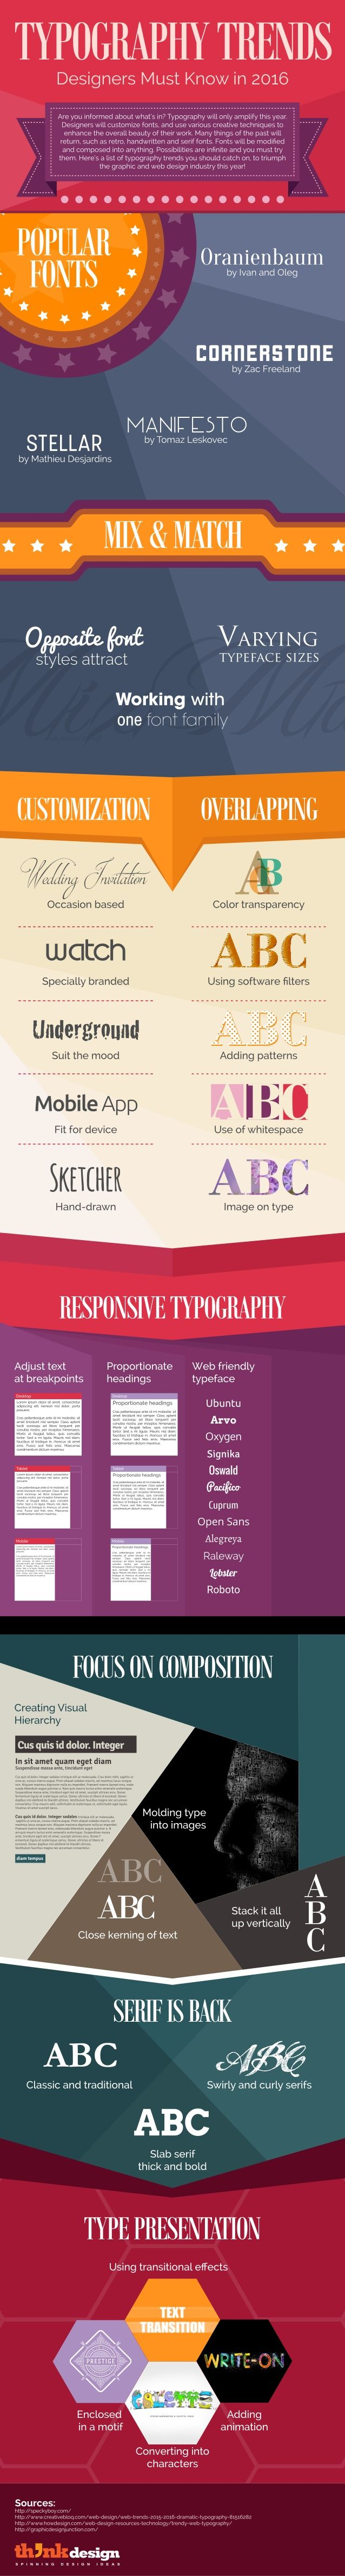 TYPOGHAPHY TRENDS  Designers Must Know in 2016   Are you informed about what's in?  Typography will only amplify this year...